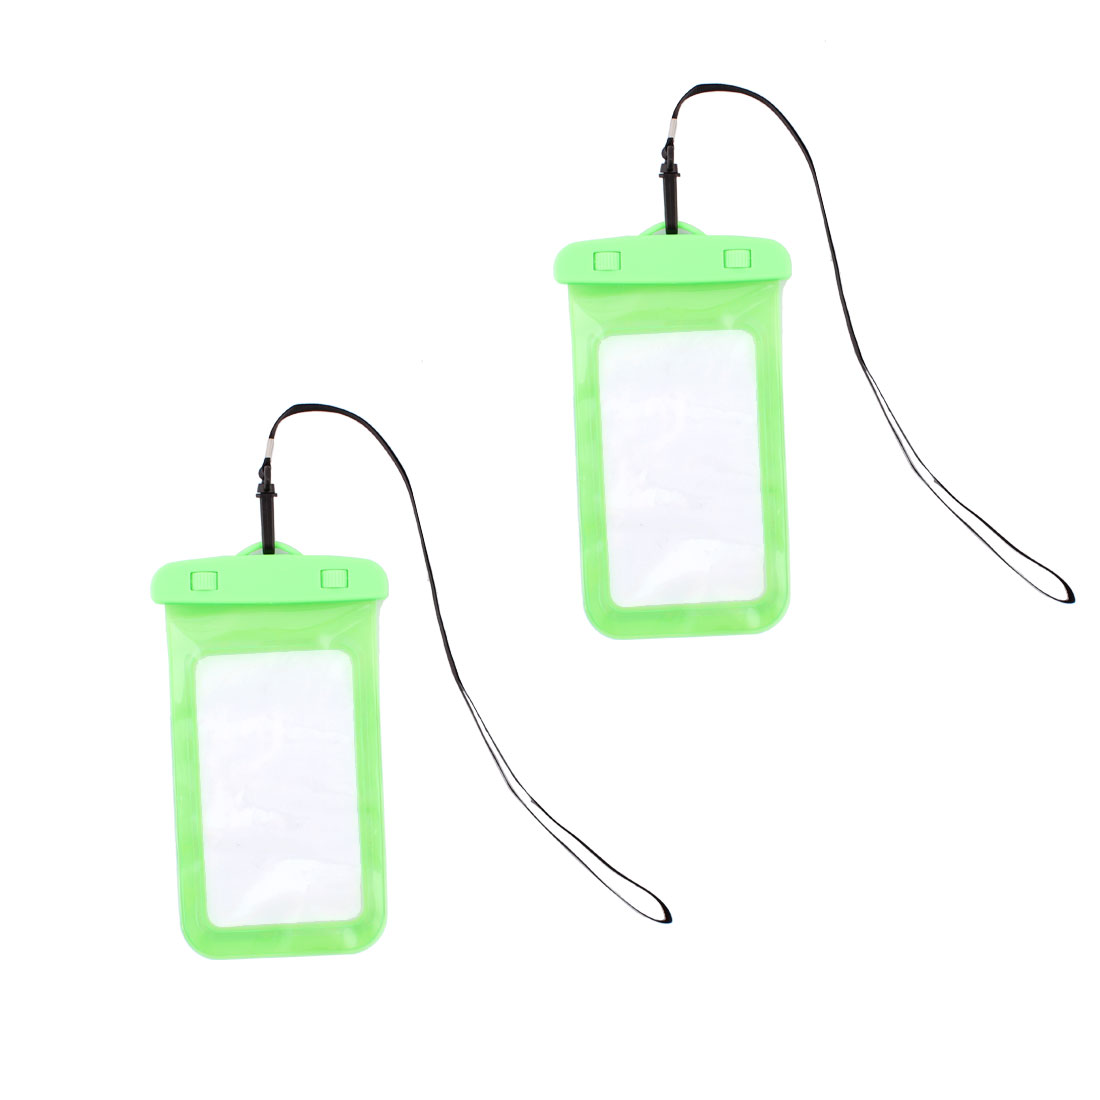 Smart Phone PVC Water Resistant Snow Proof Bag Protector Pouch Green 2 Pcs